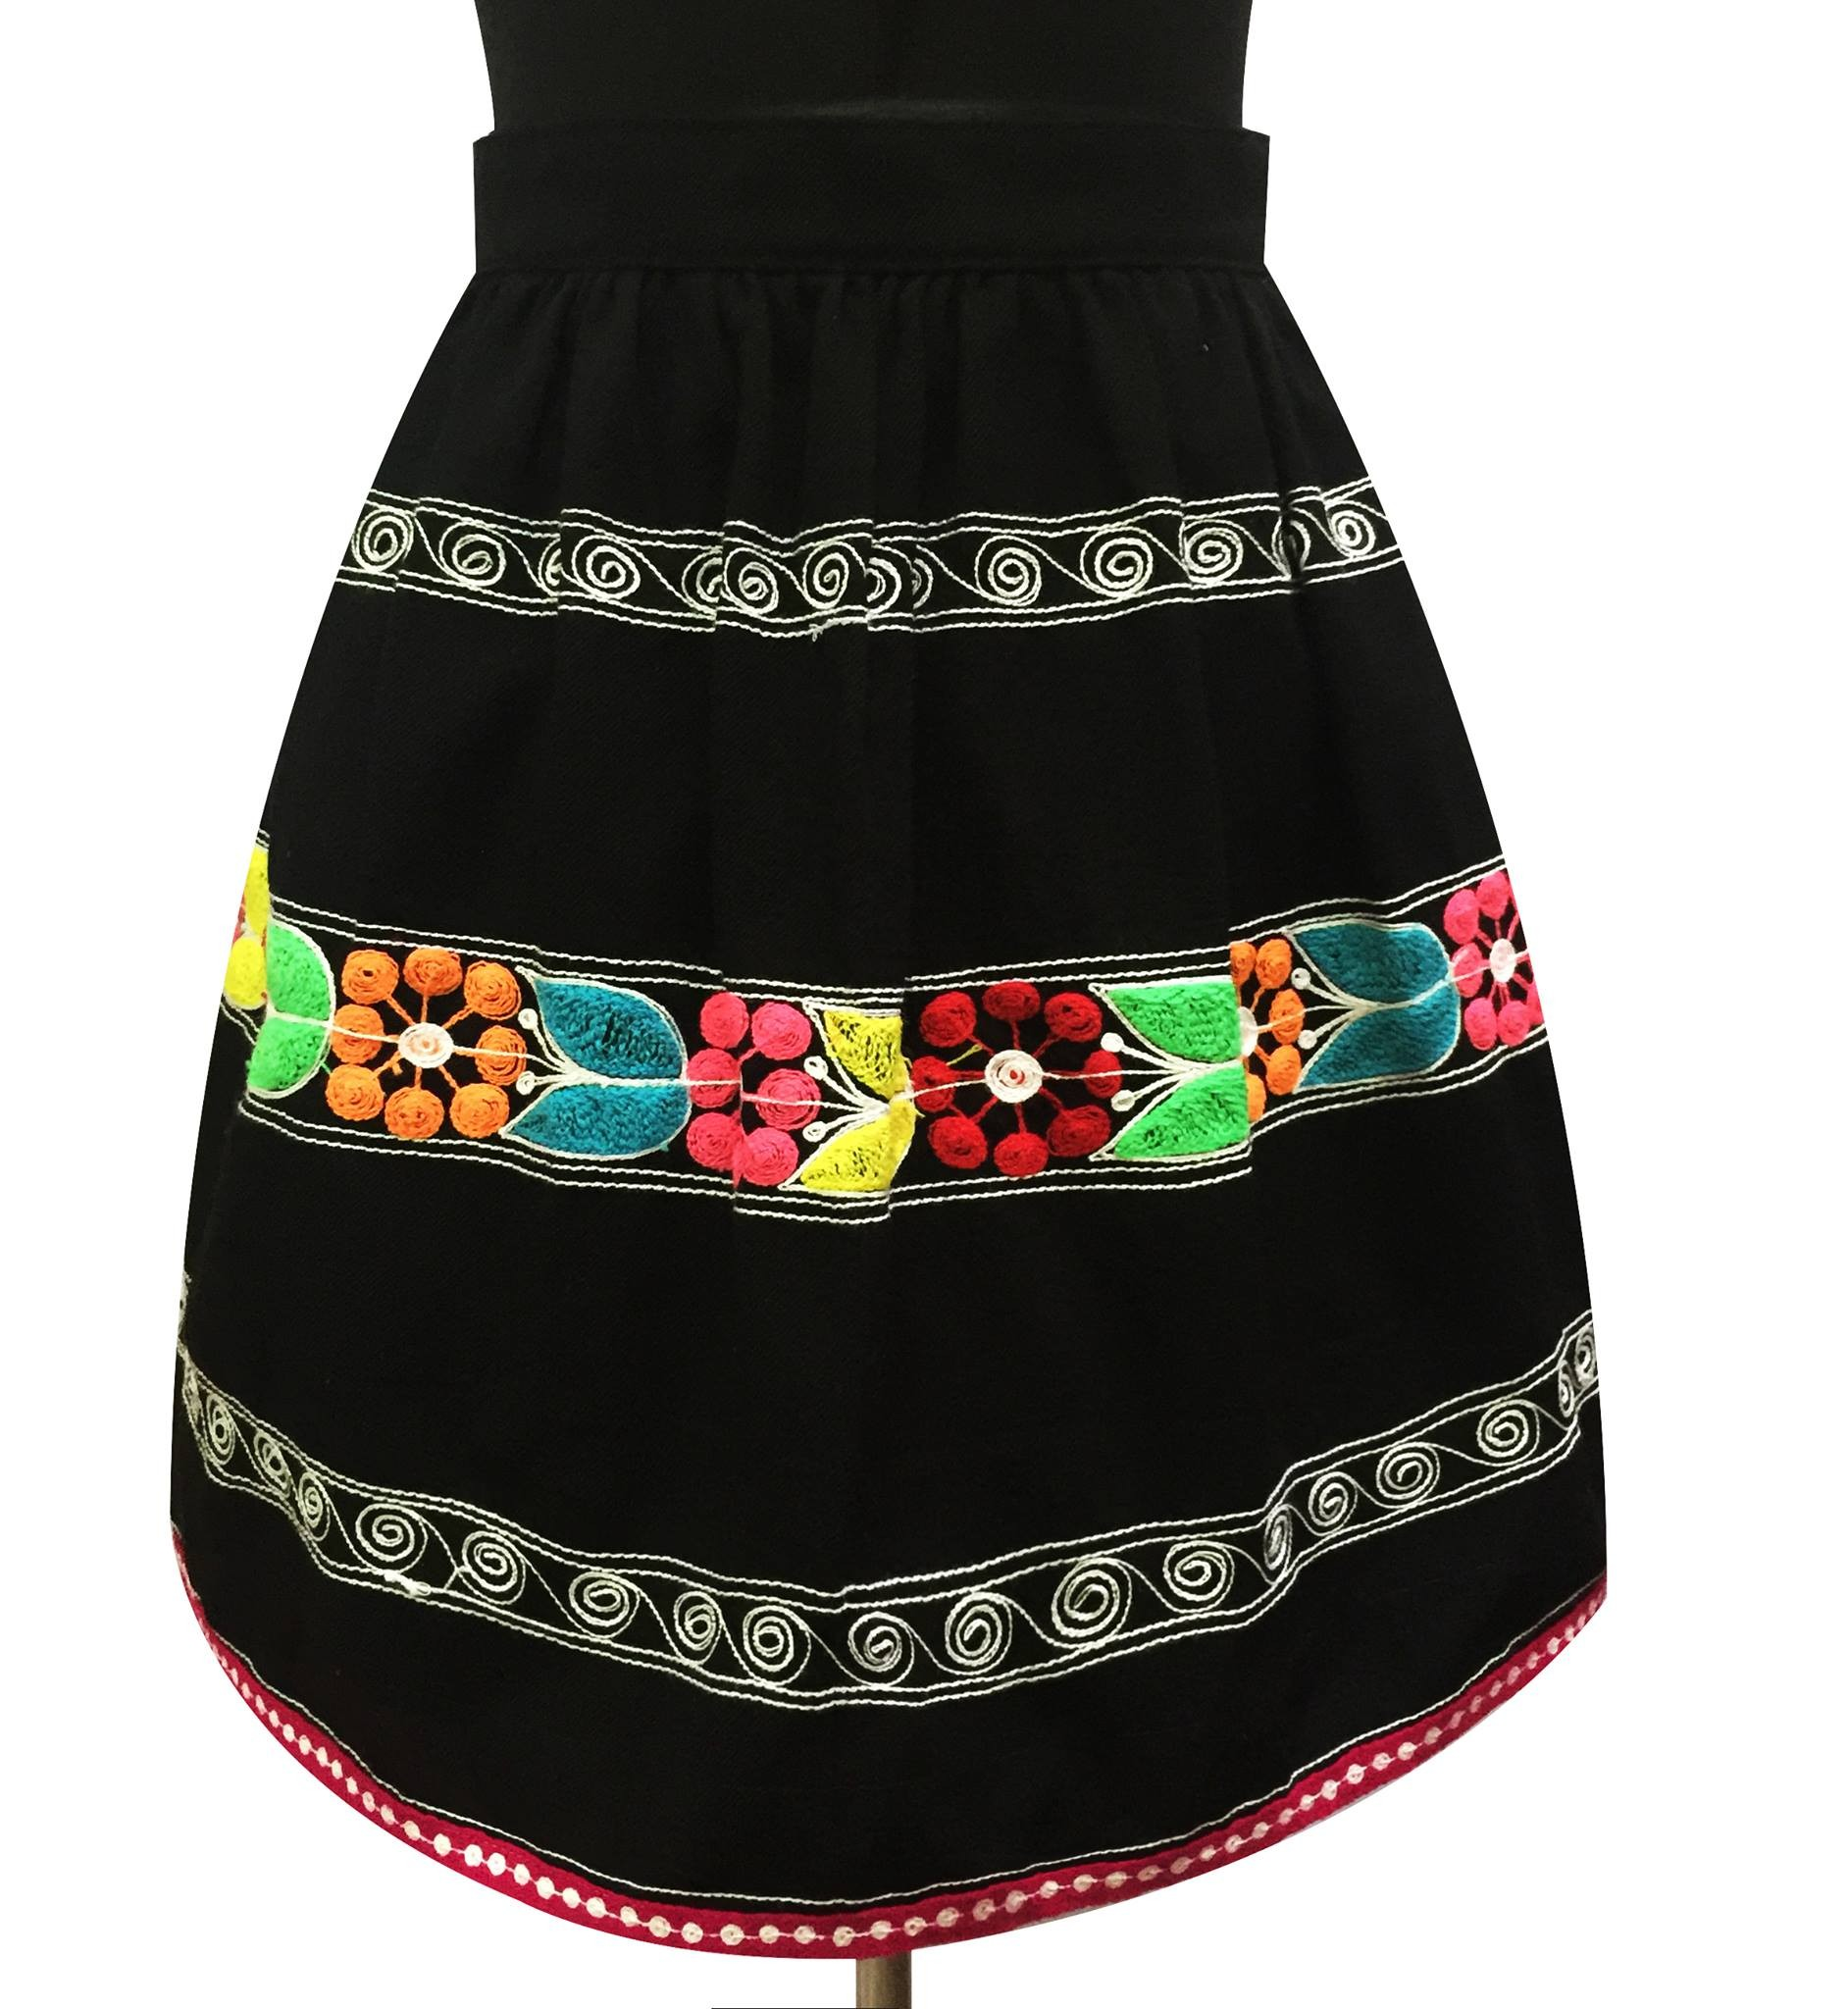 Acomayo andean skirt, Size S